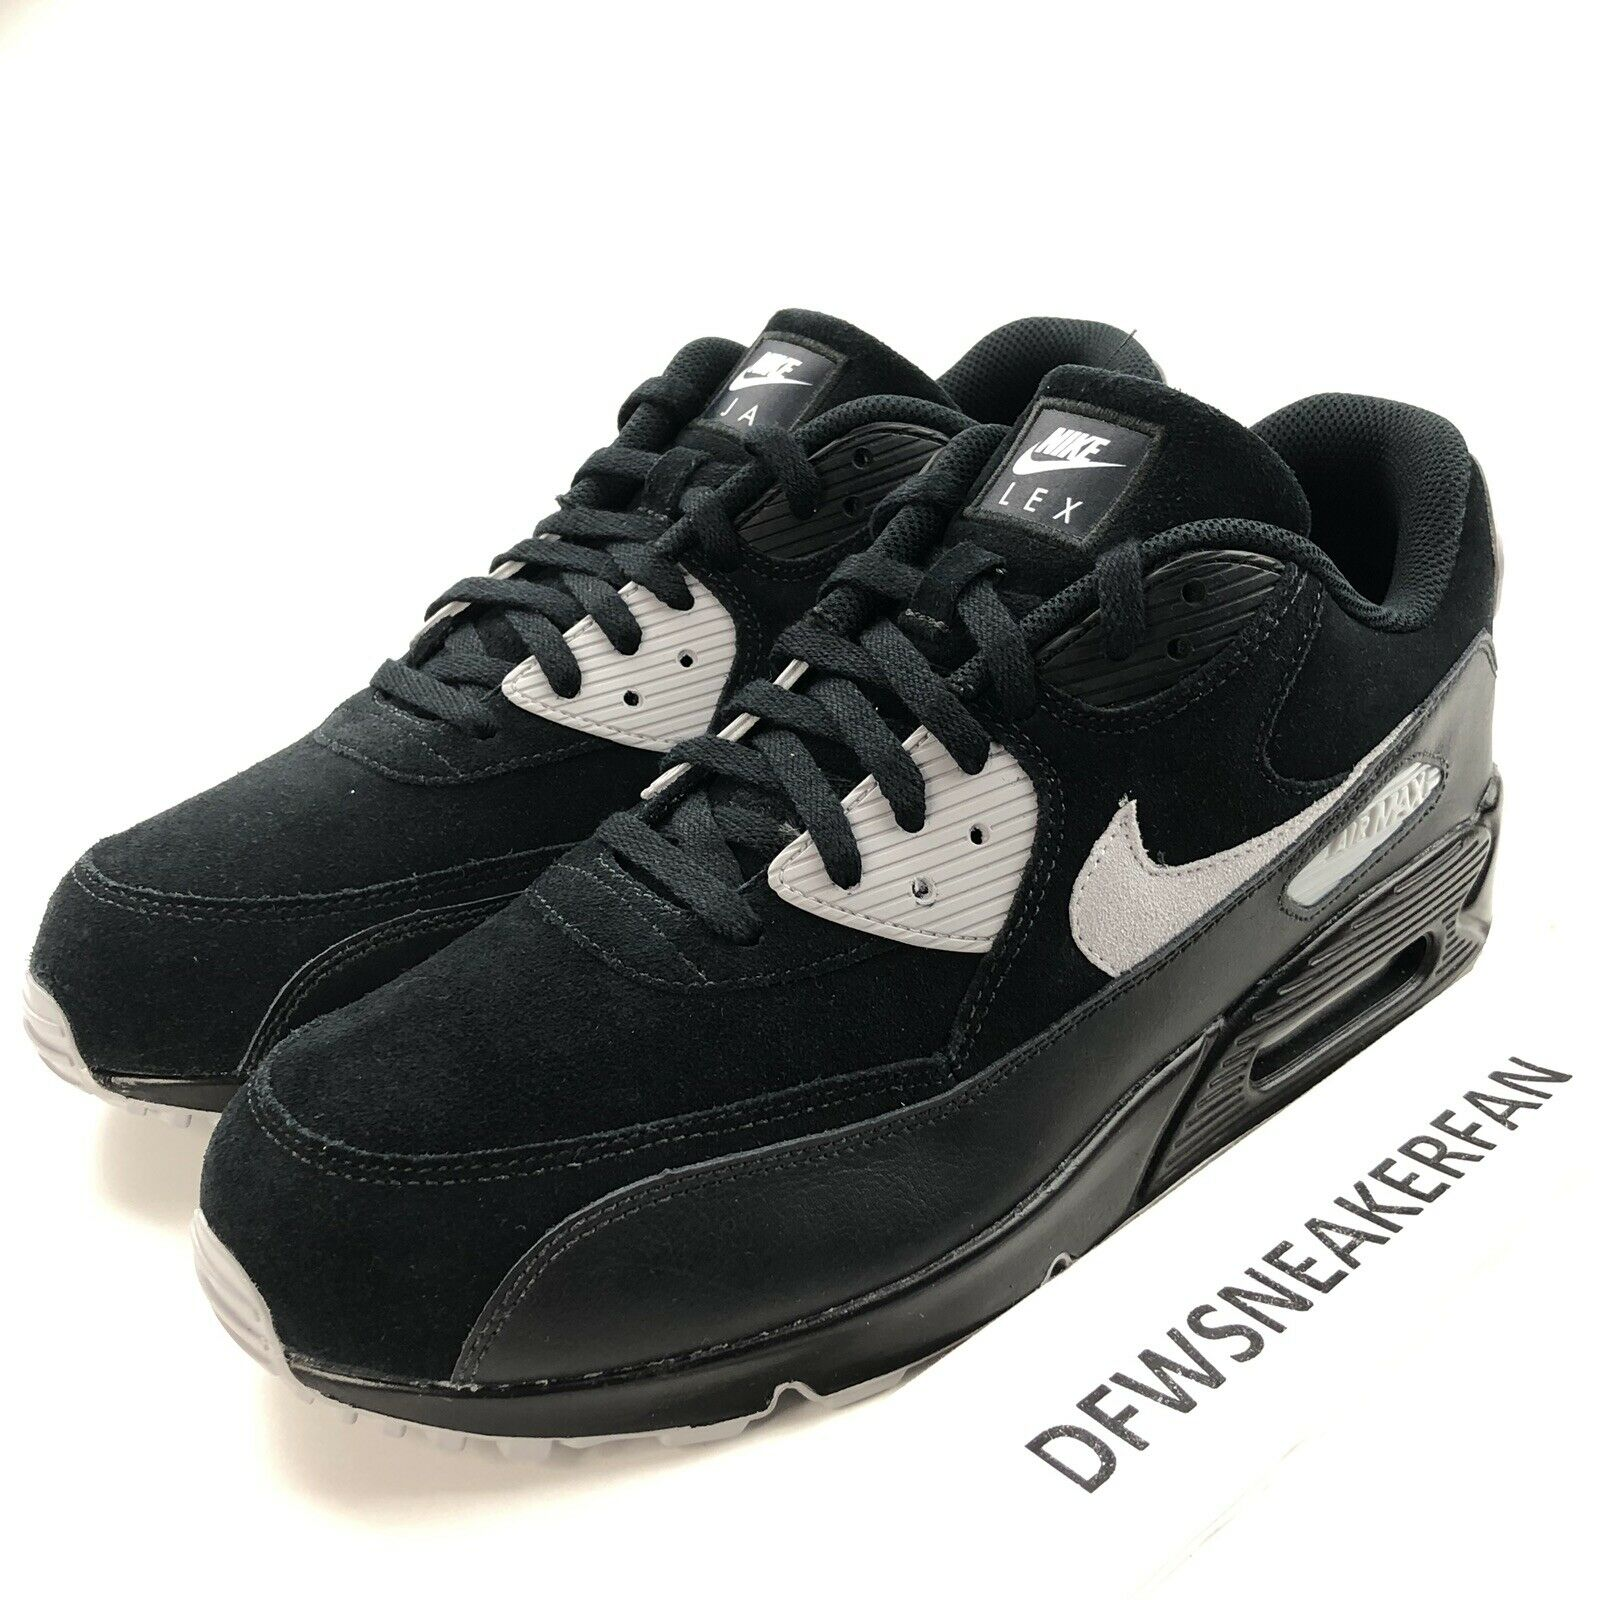 Nike iD Air Max 90 Men's 12 Customized By Jeremiah Shoes